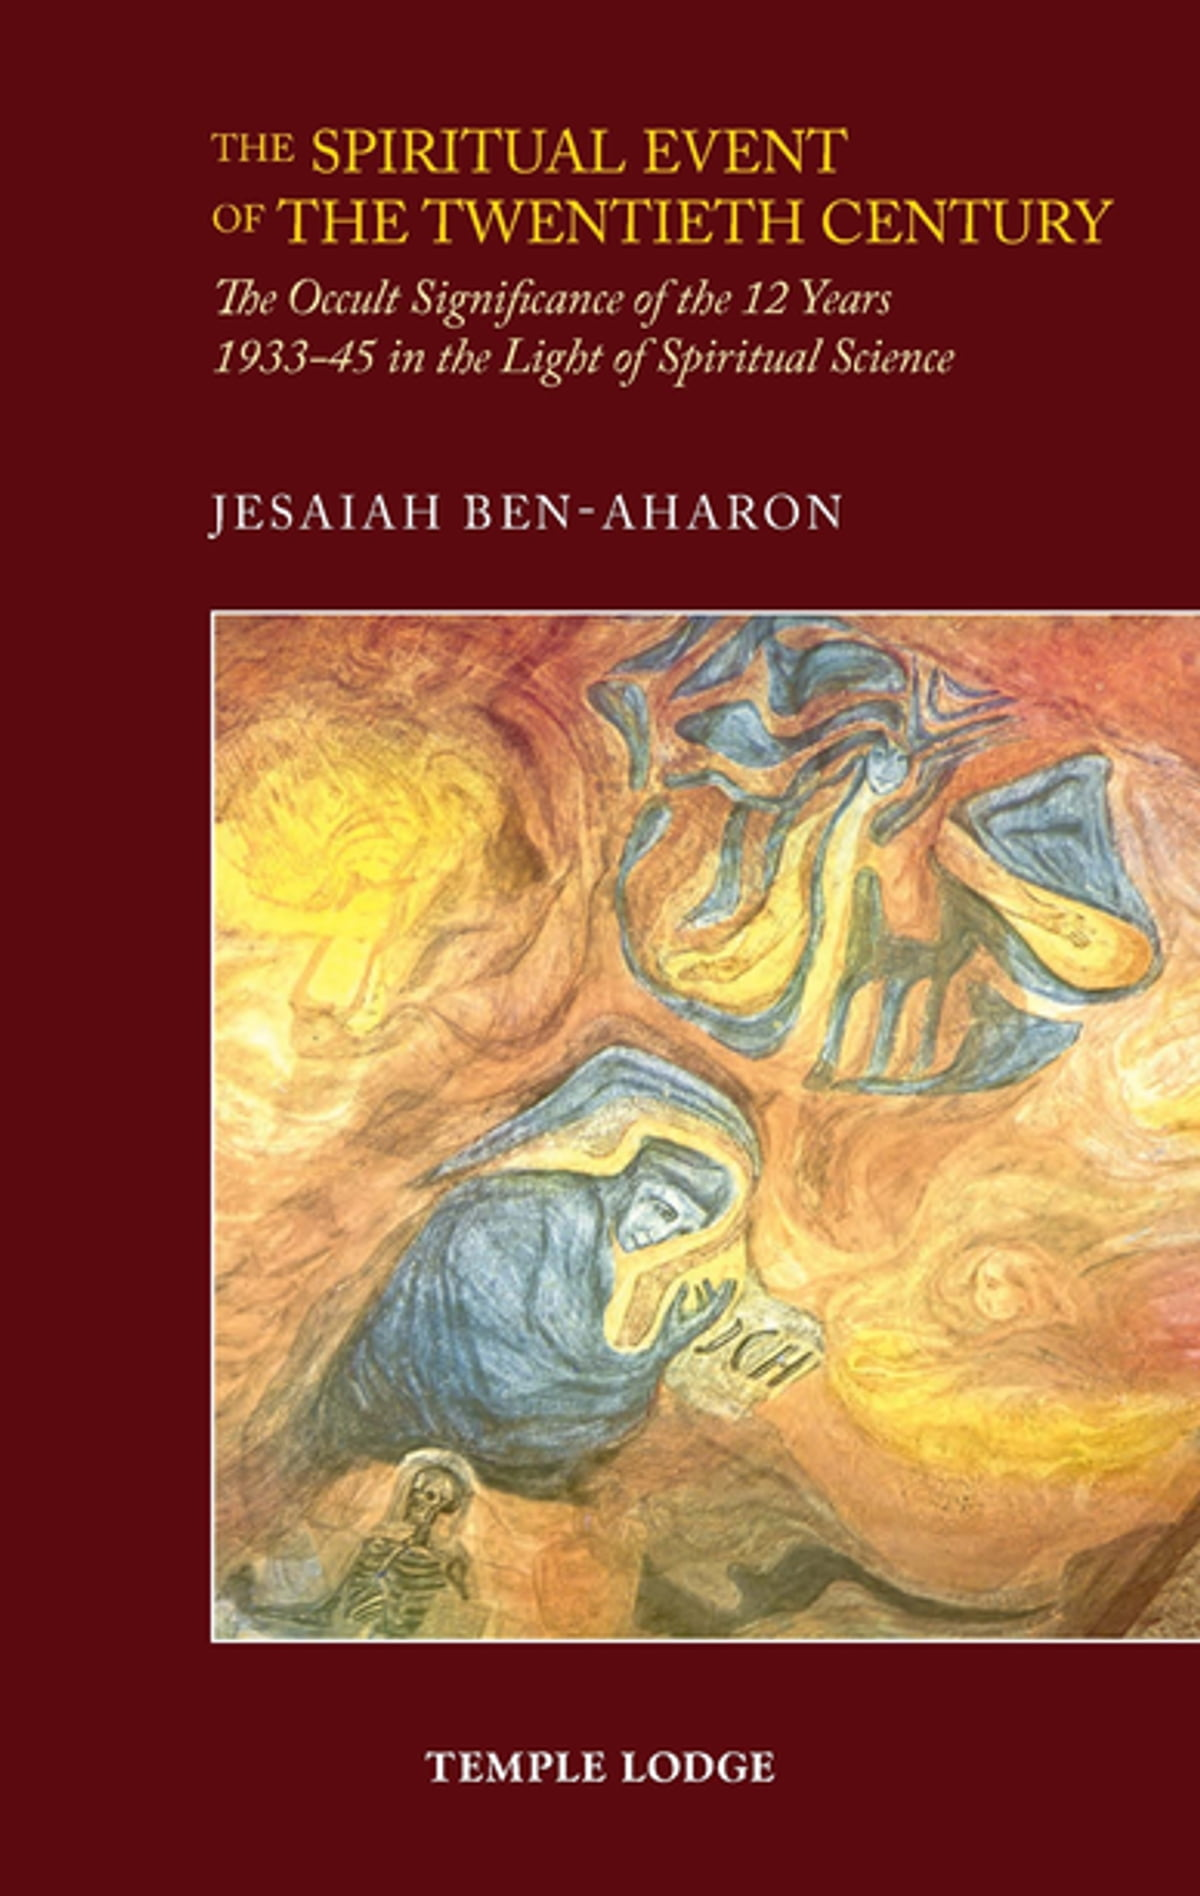 The Spiritual Event of the Twentieth Century ebook by Jesaiah Ben-Aharon -  Rakuten Kobo